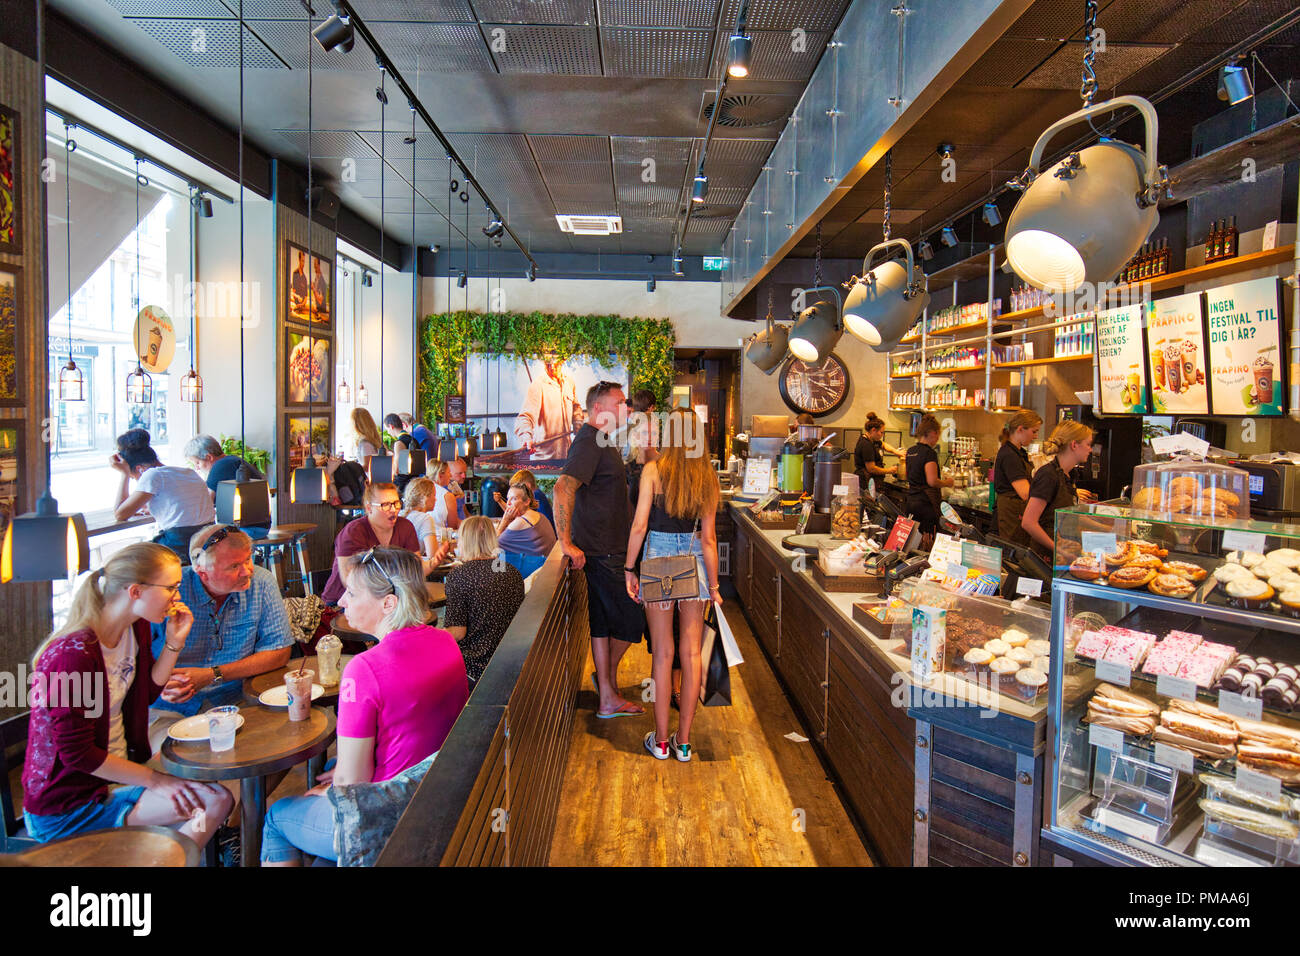 Copenhagen, Denmark-August 1, 2018: People eating in busy cafe located on Kongens Nytorv central city square - Stock Image